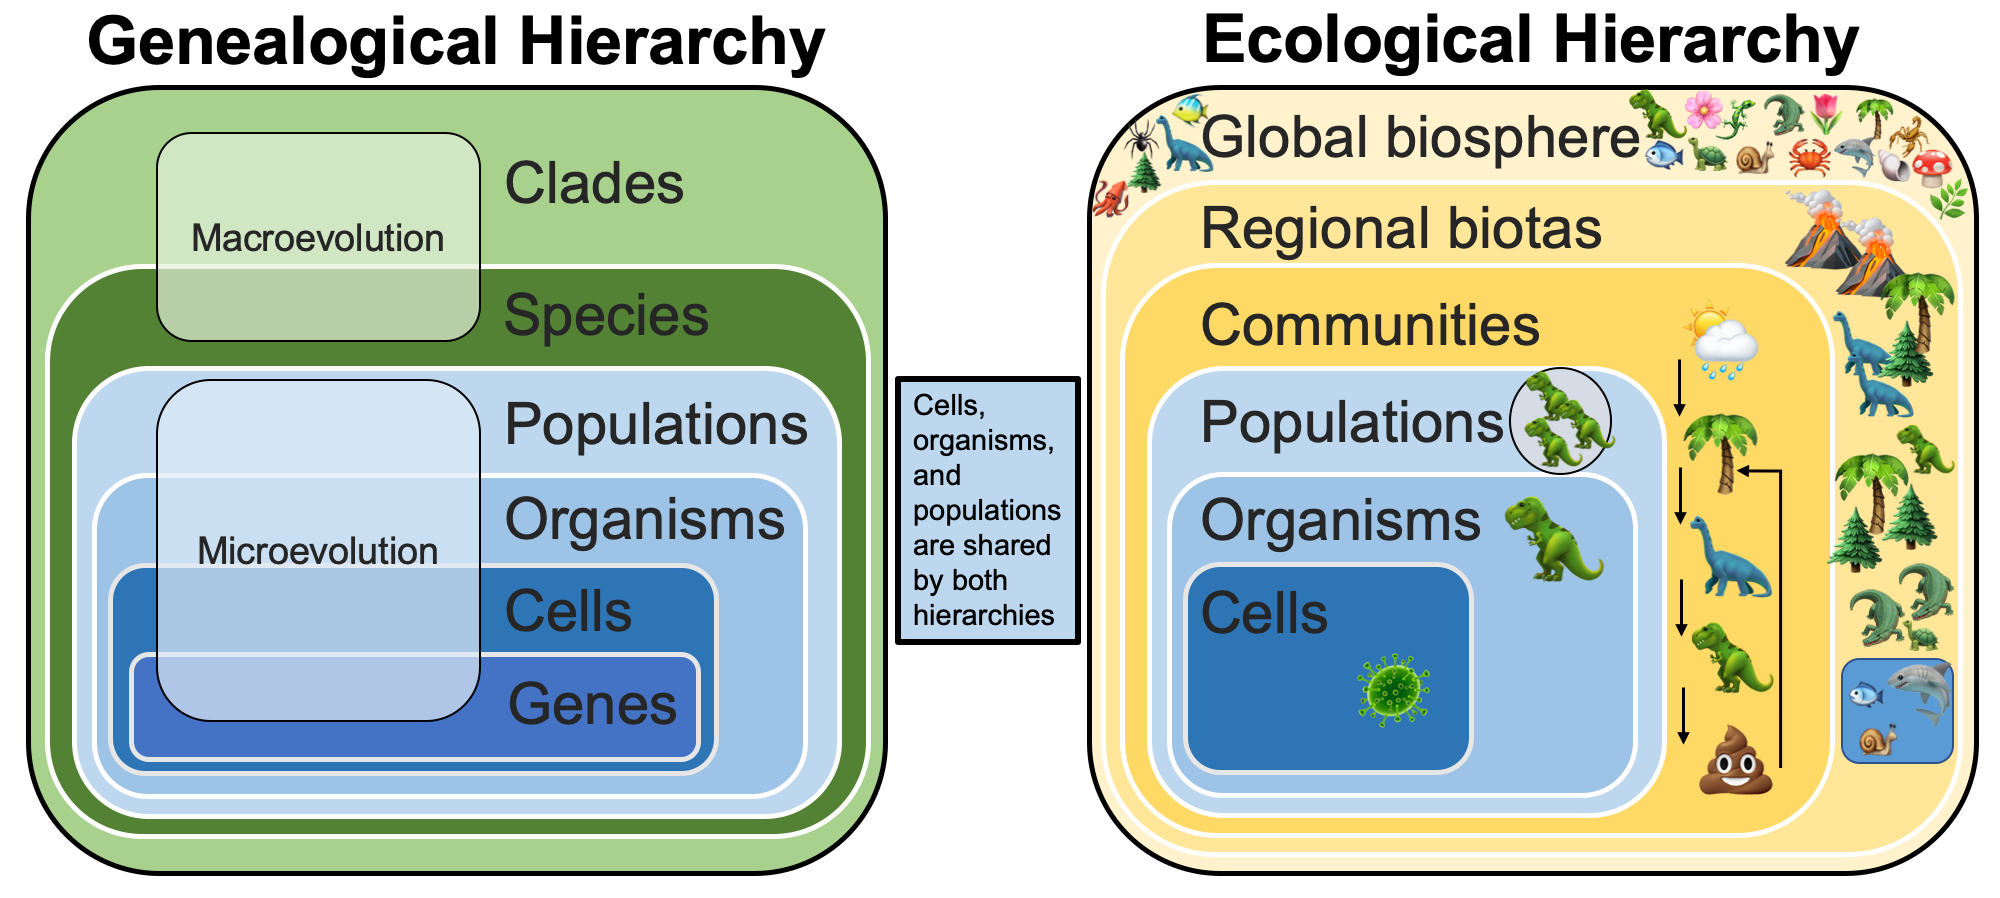 Diagram showing the genealogical and ecological hierarchies, as well as relationships between them.